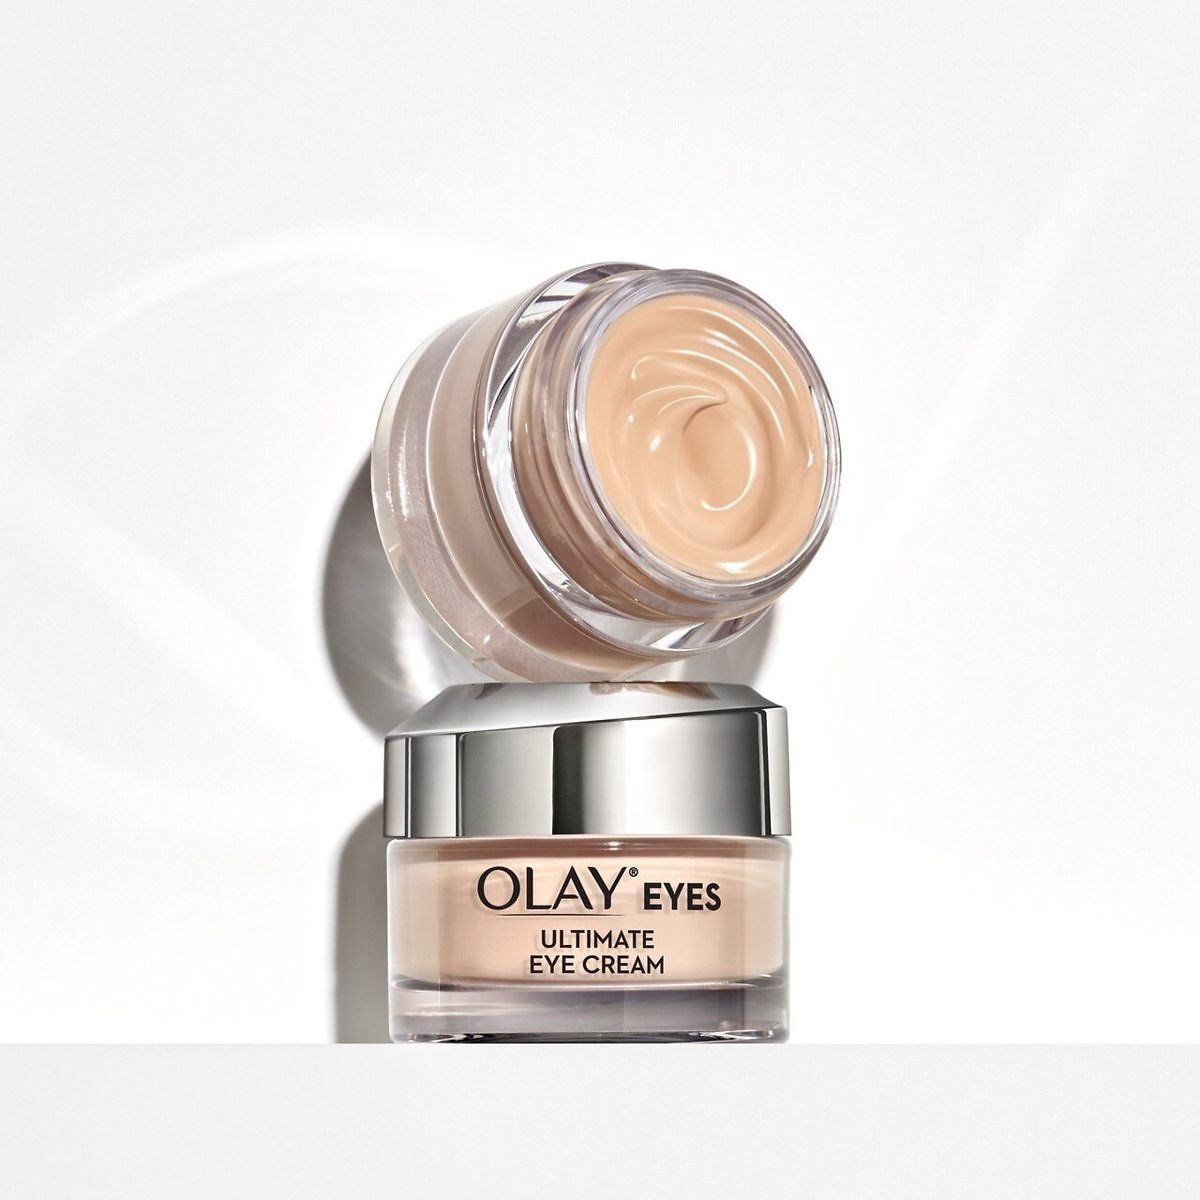 Ultimate Eye Cream For Wrinkles, Puffy Eyes And Dark Circles Fragrance Free